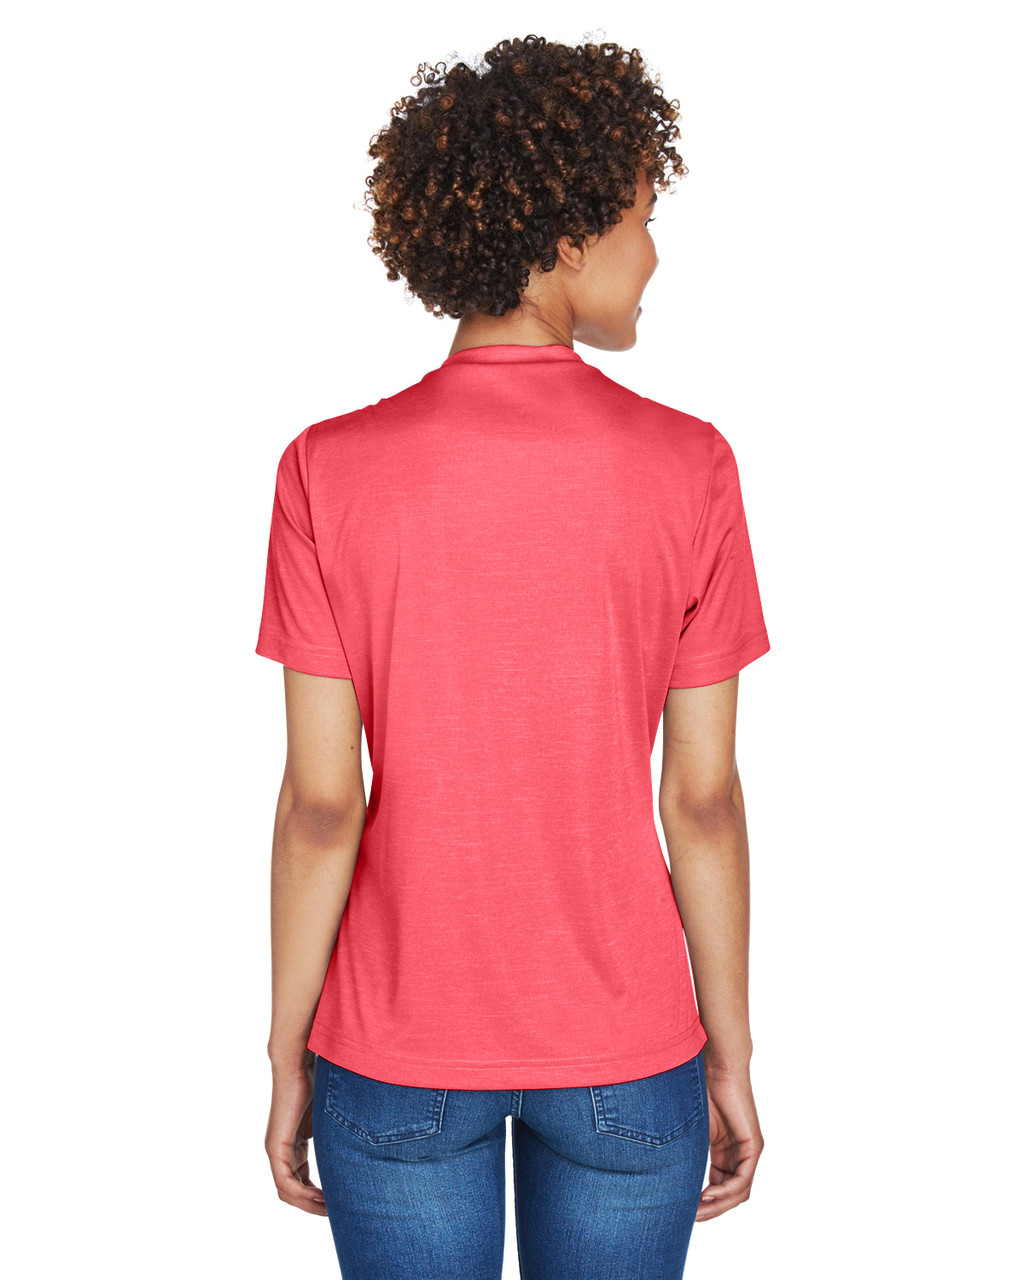 Sport Red Heather, Back - TT11HW Team 365 Ladies' Sonic Heather Performance T-Shirt | BlankClothing.ca